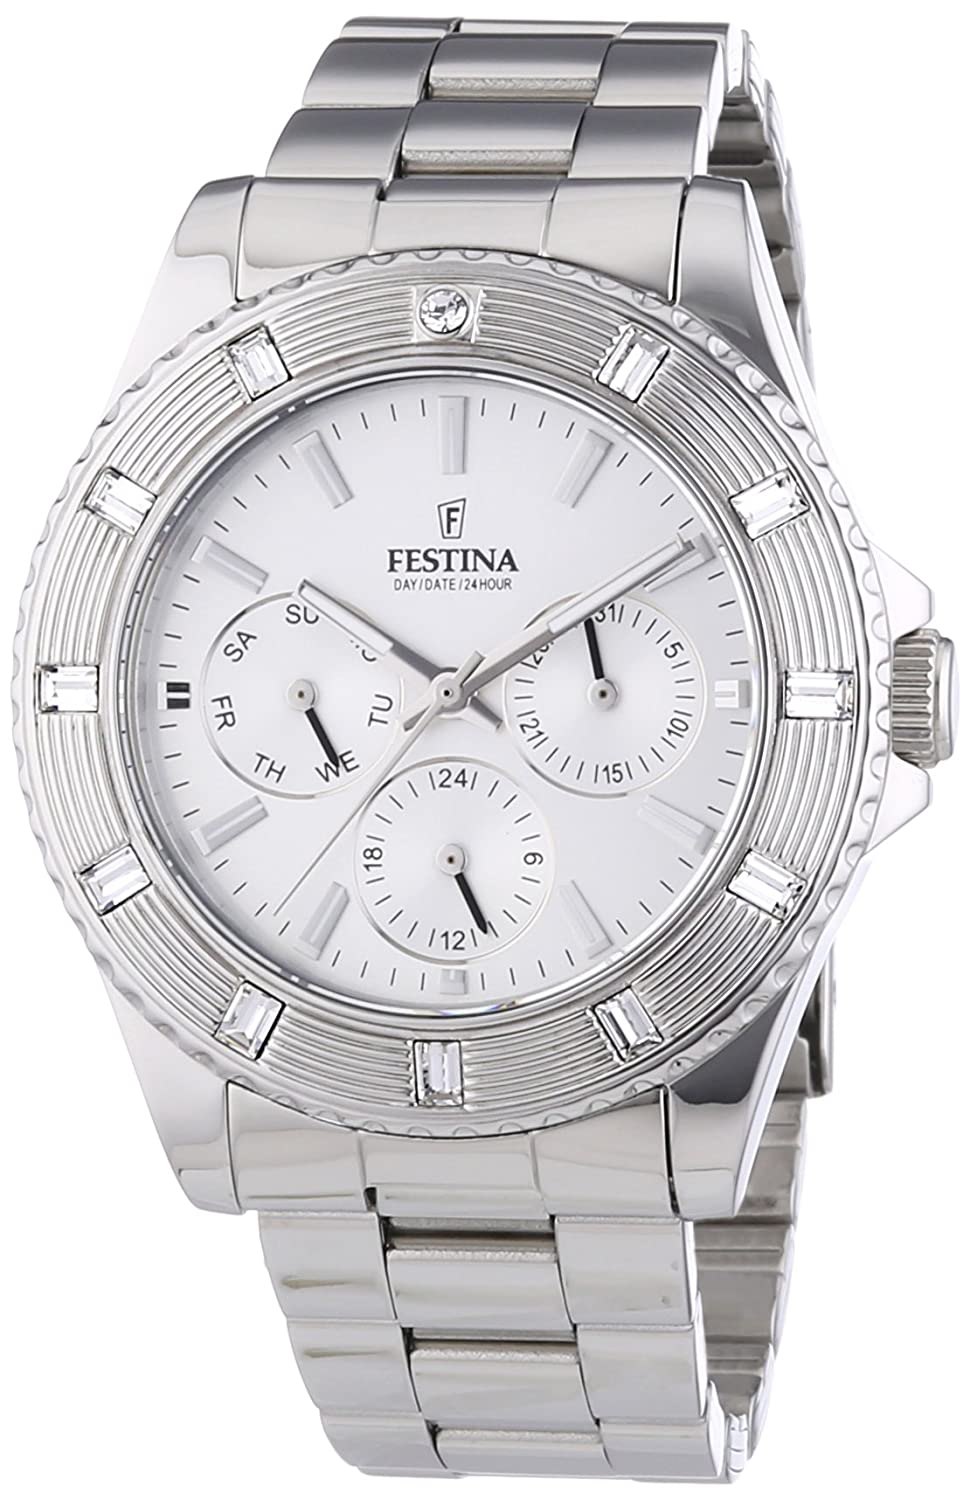 Amazon.com: Ladys watch - Festina - Day/Date/Hour - Stainless Steel Band - F16697/1: Watches